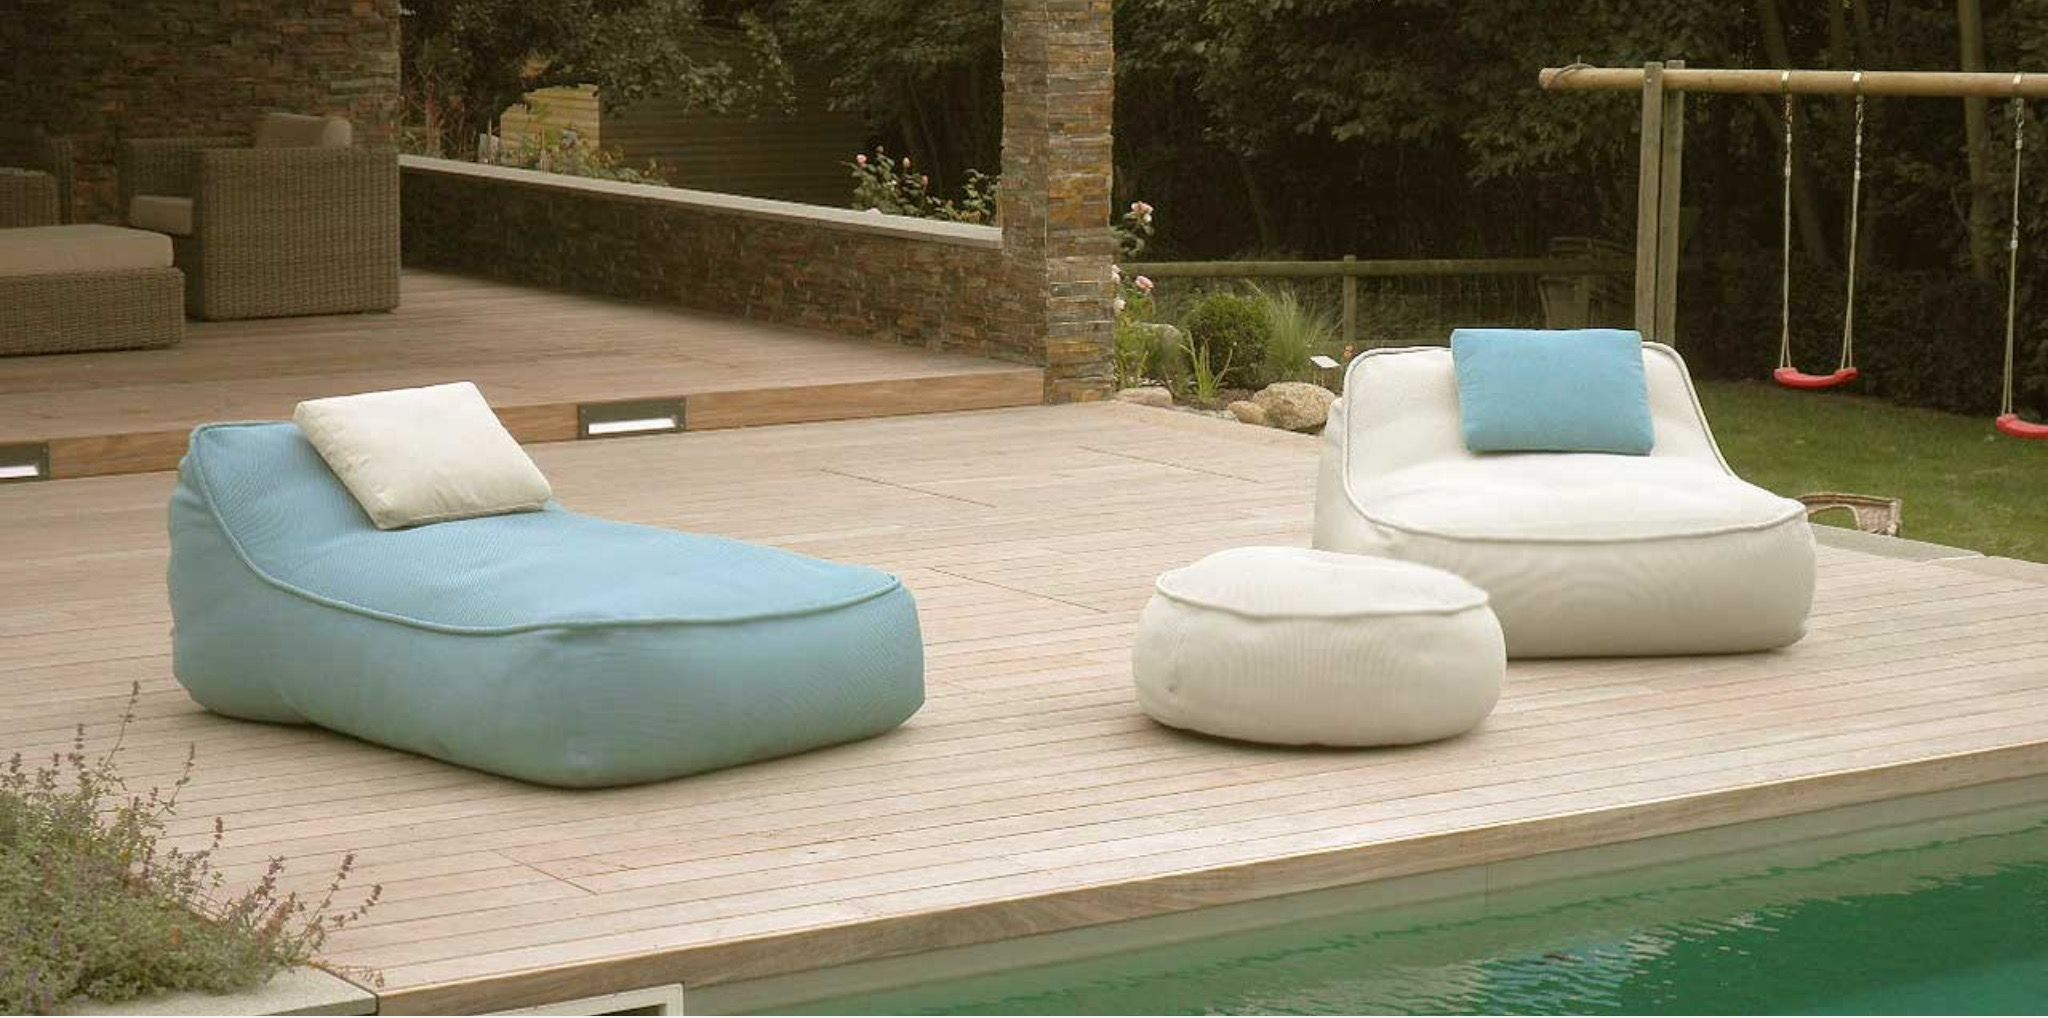 Paola Lenti Float   pouf   Pinterest   Outdoor, Furniture and ...